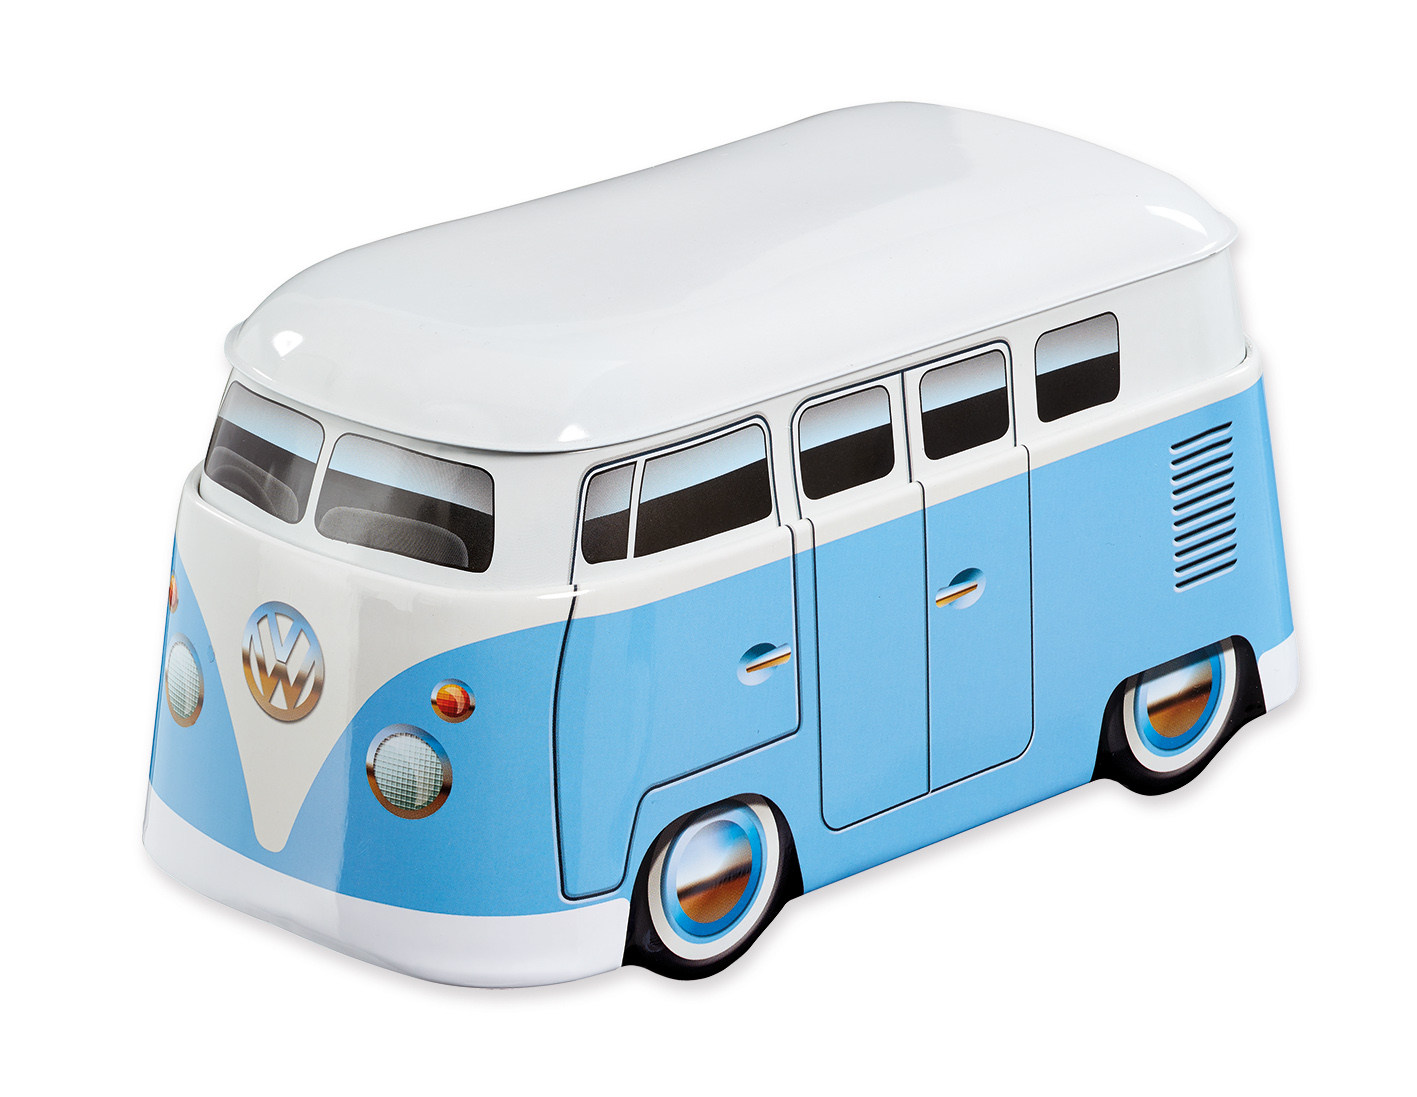 The Official VW Campervan Jigsaw Puzzle